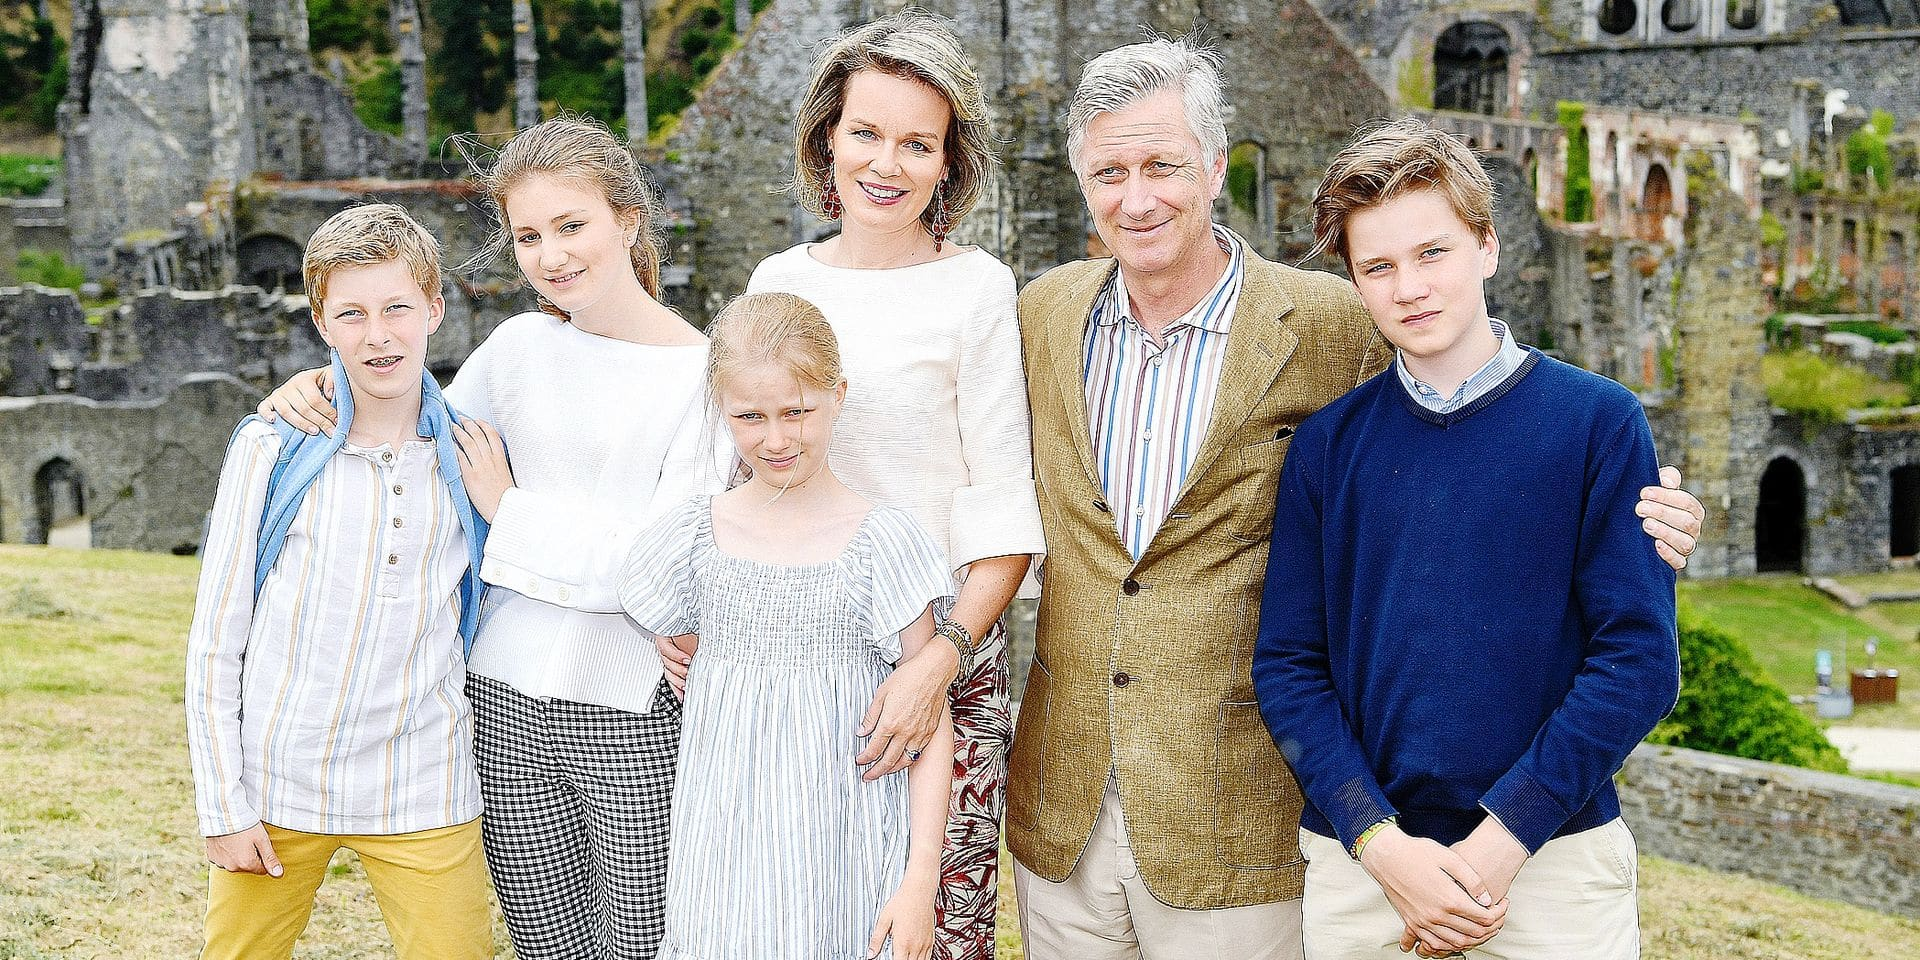 Villers-la-Ville , 24/06/2018 Belgium's King Philippe, Queen Mathilde, Princess Elisabeth, Prince Gabriel, Prince Emmanuel and Princess Eléonore visit during their holidays the Abbaye de Villers (Villers Abbey), situated in the commune of Villers-la-Ville. The Abbey was founded in the 12th Century, under the aegis of Saint Bernard. Pix : King Philippe / Queen Mathilde/ Prince Gabriel / Princess Elisabeth / Prince Emmanuel / Princess Eleonore Copyright Frederic Sierakowski / POOL / Reporters Reporters / GYS